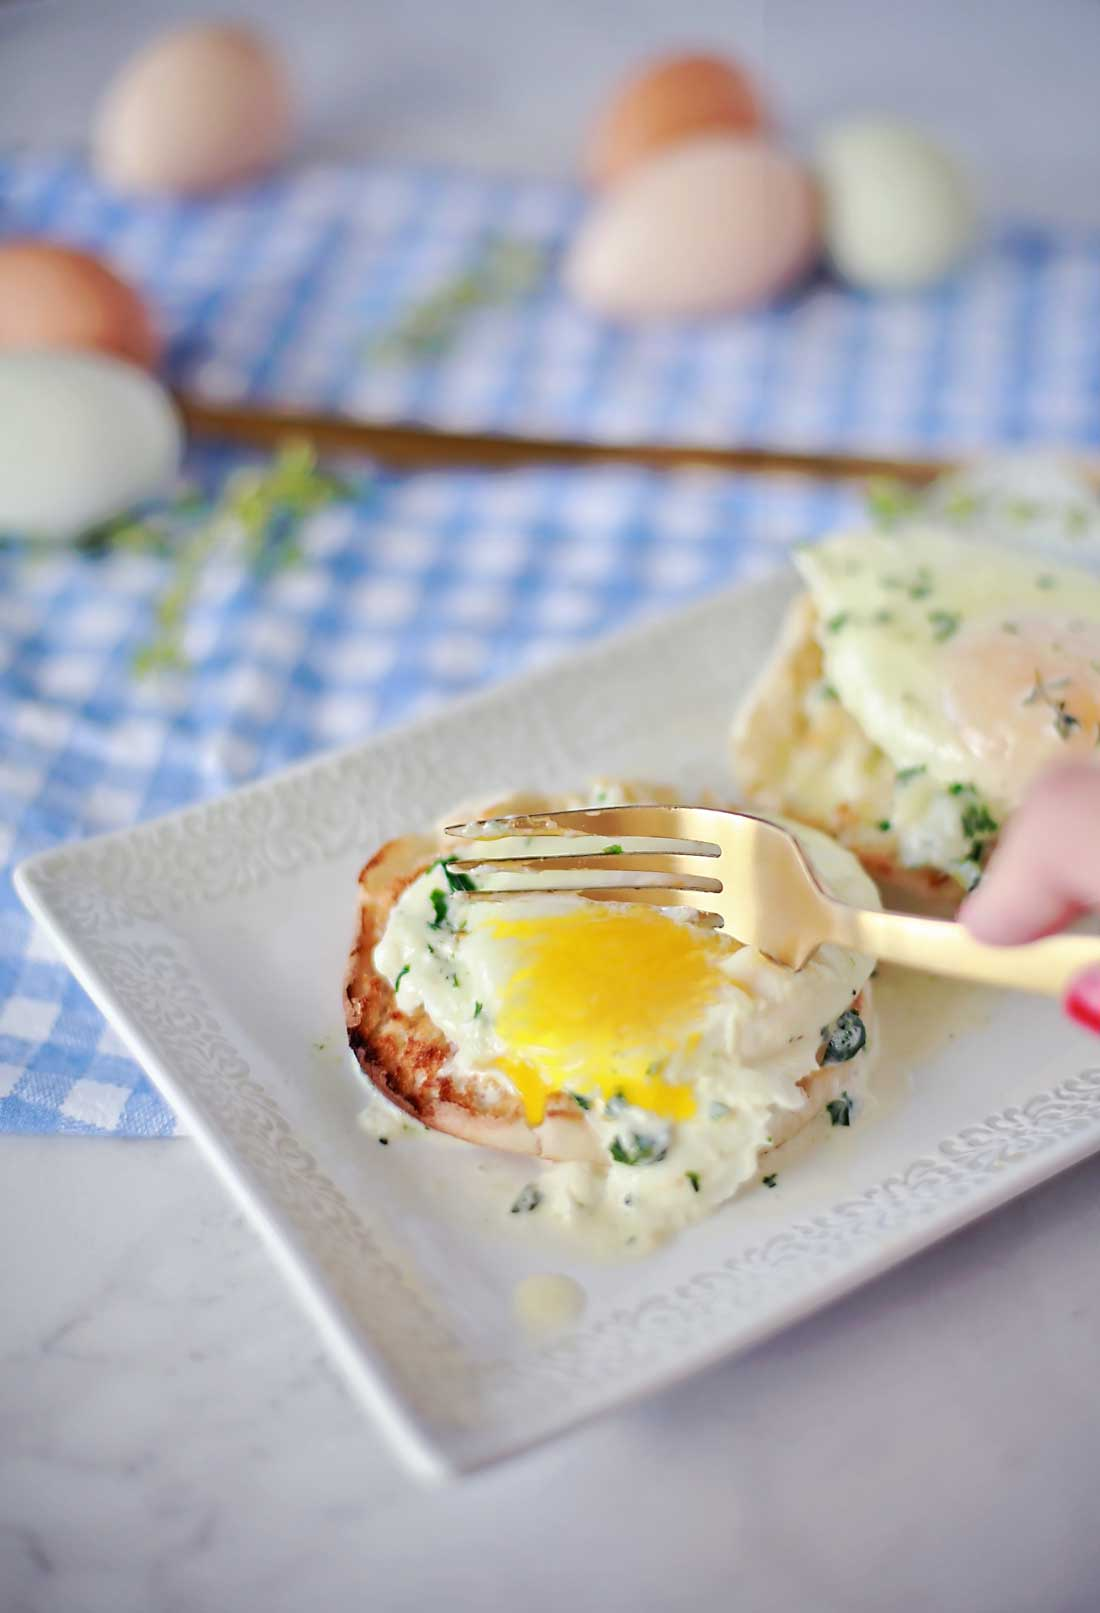 Perfet easy over recipe for Herbs and Cream Eggs on a biscuit... SOOO GOOD!!!